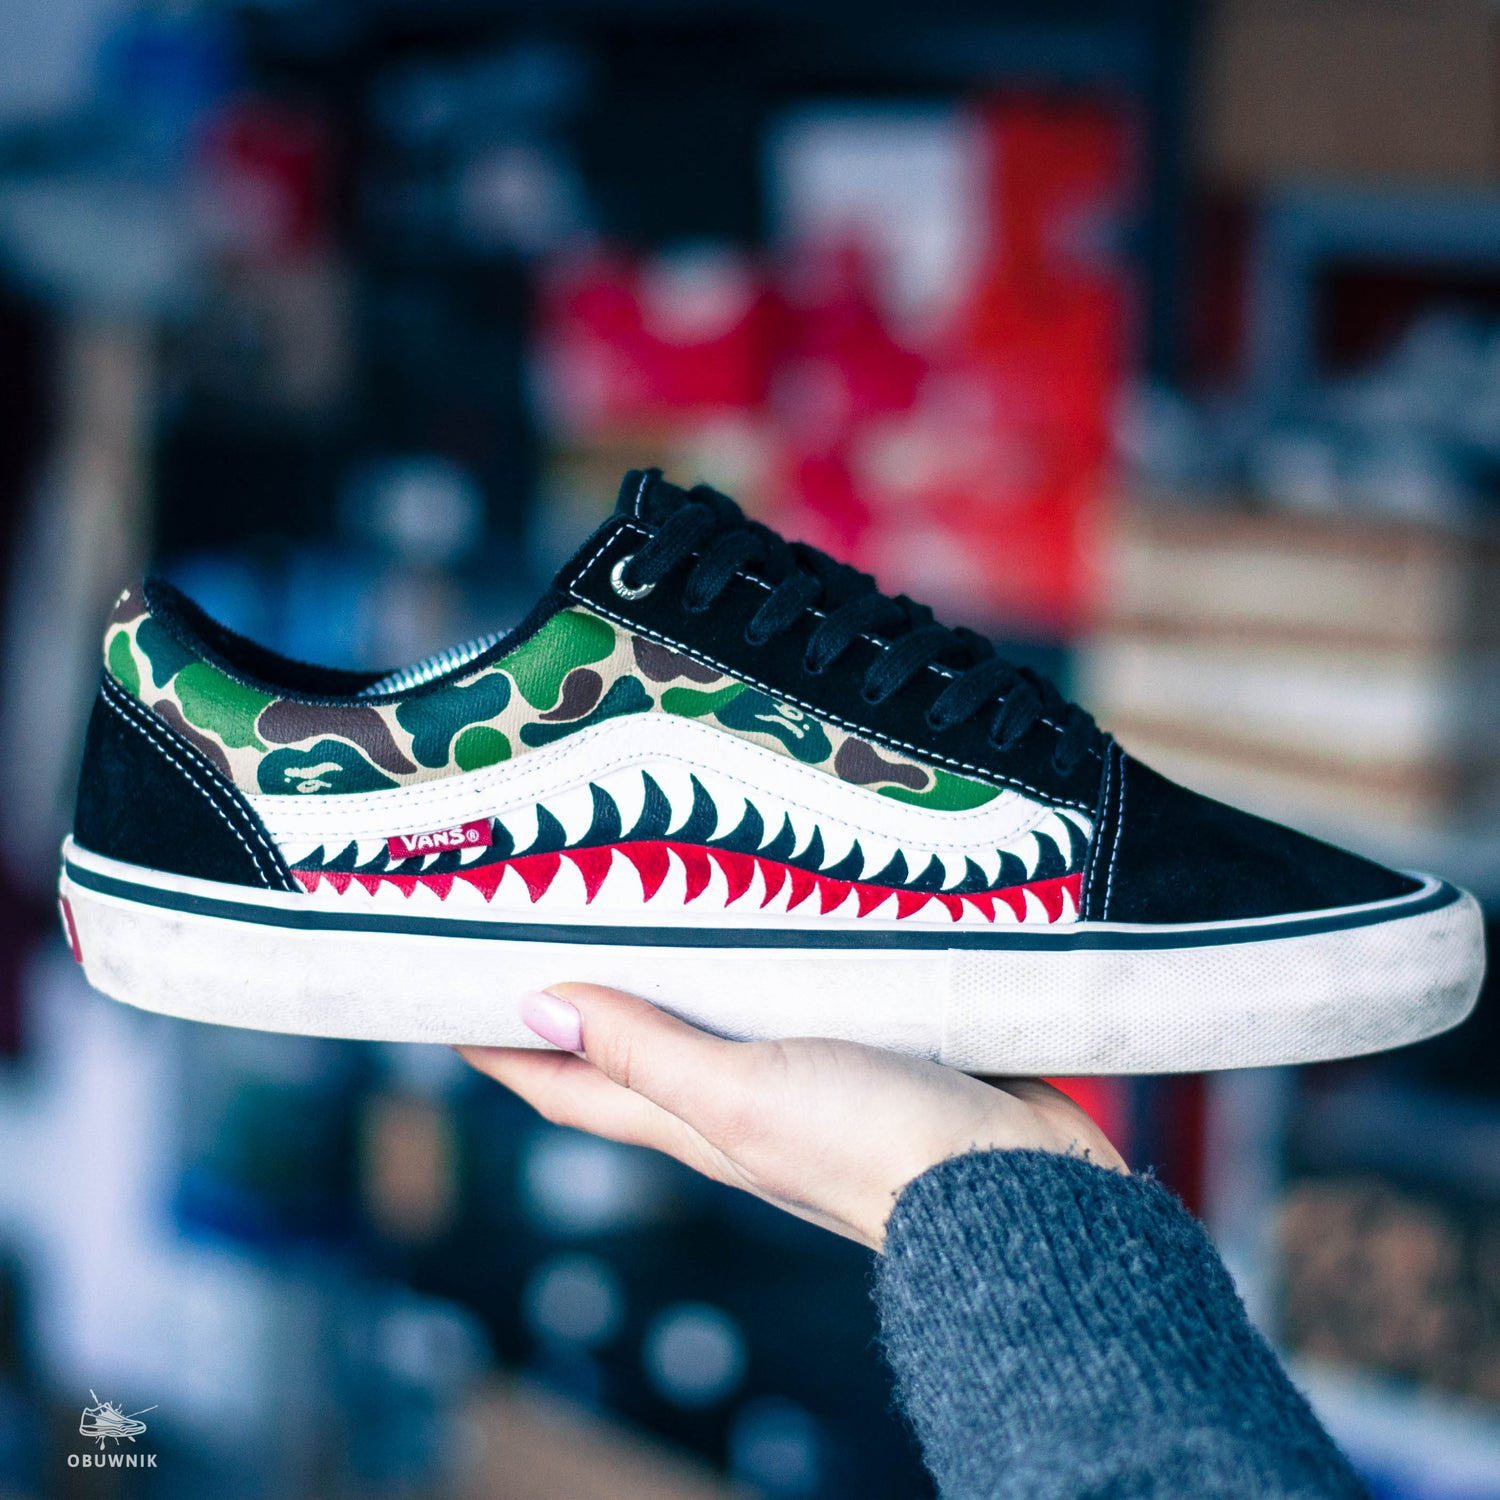 Image of Vans x Bape Shark